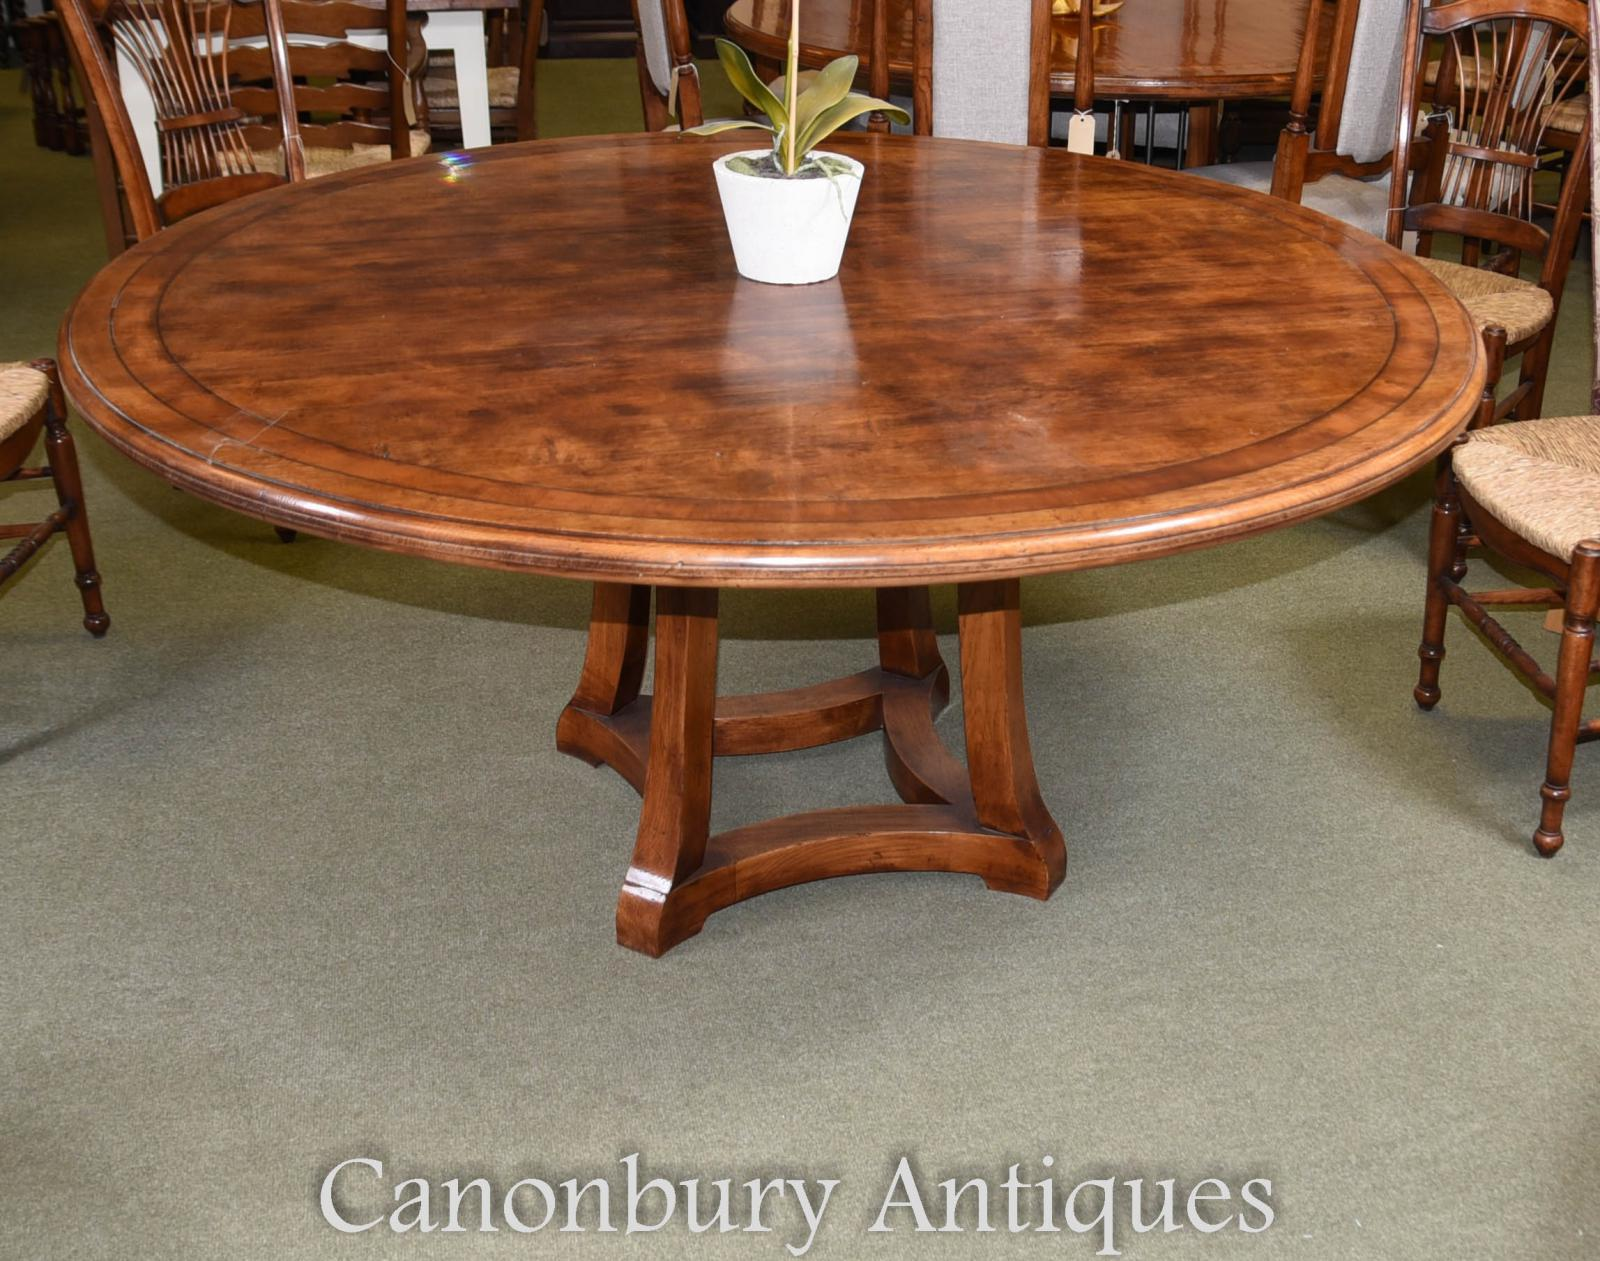 Round Oak Wood Refectory Dining Table Kitchen Diner eBay : Round Oak Wood Refectory Dining Table Kitchen Diner 1509081224 zoom 96 from www.ebay.com.au size 1600 x 1261 jpeg 271kB